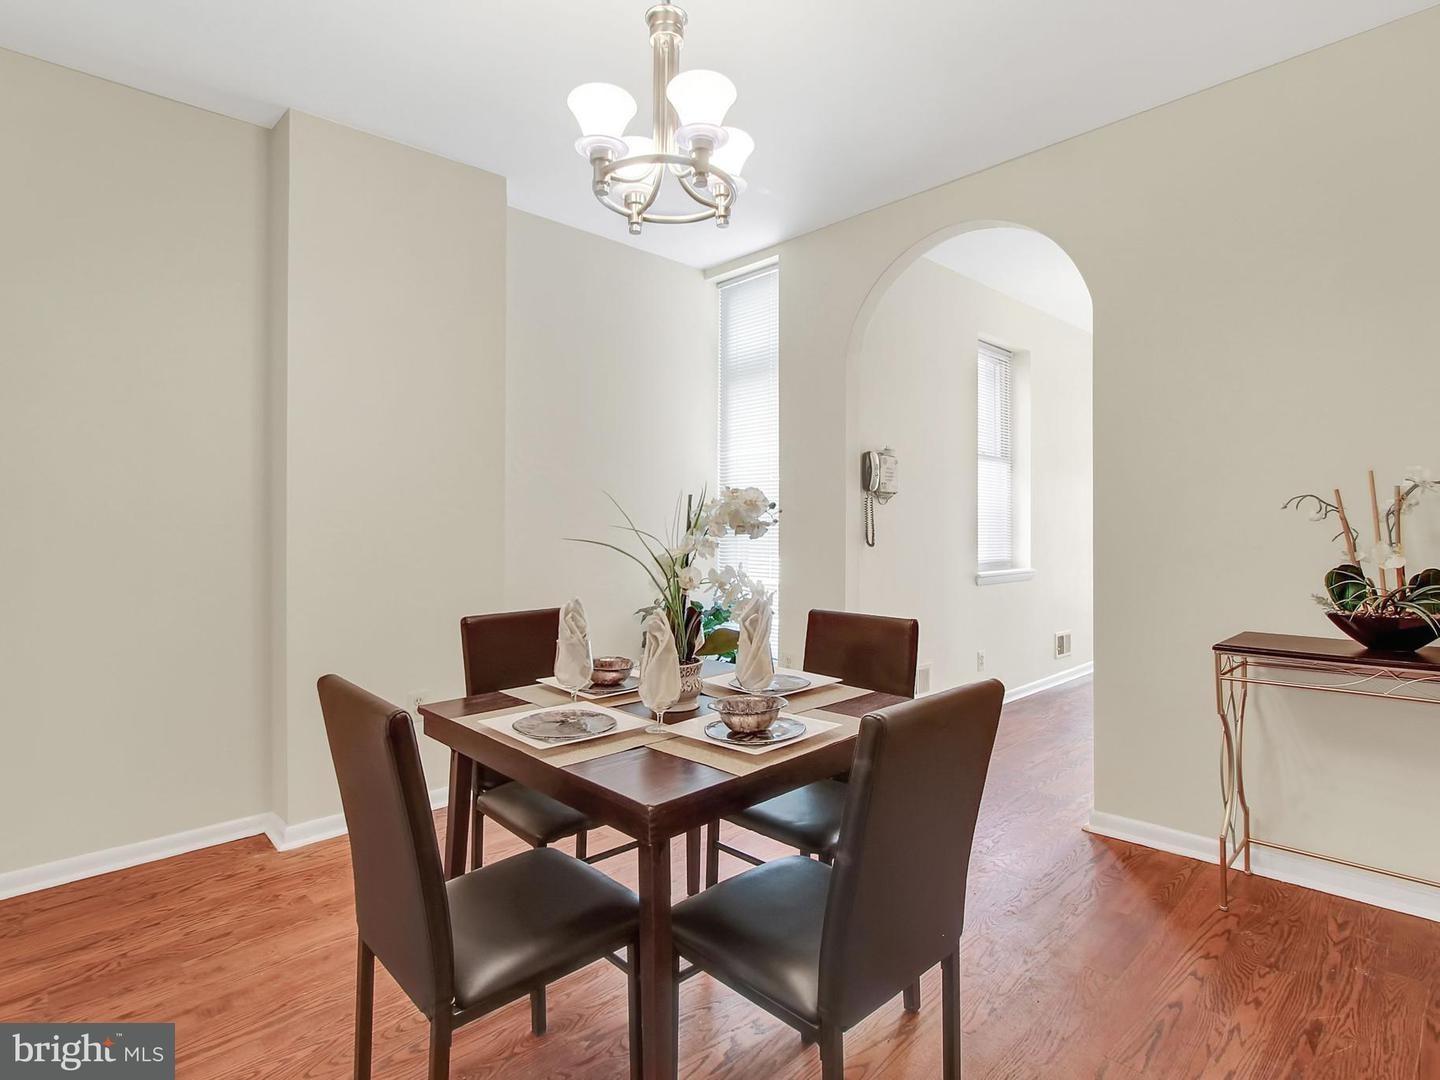 Other Residential for Rent at 1029 Hanover St S Baltimore, Maryland 21230 United States